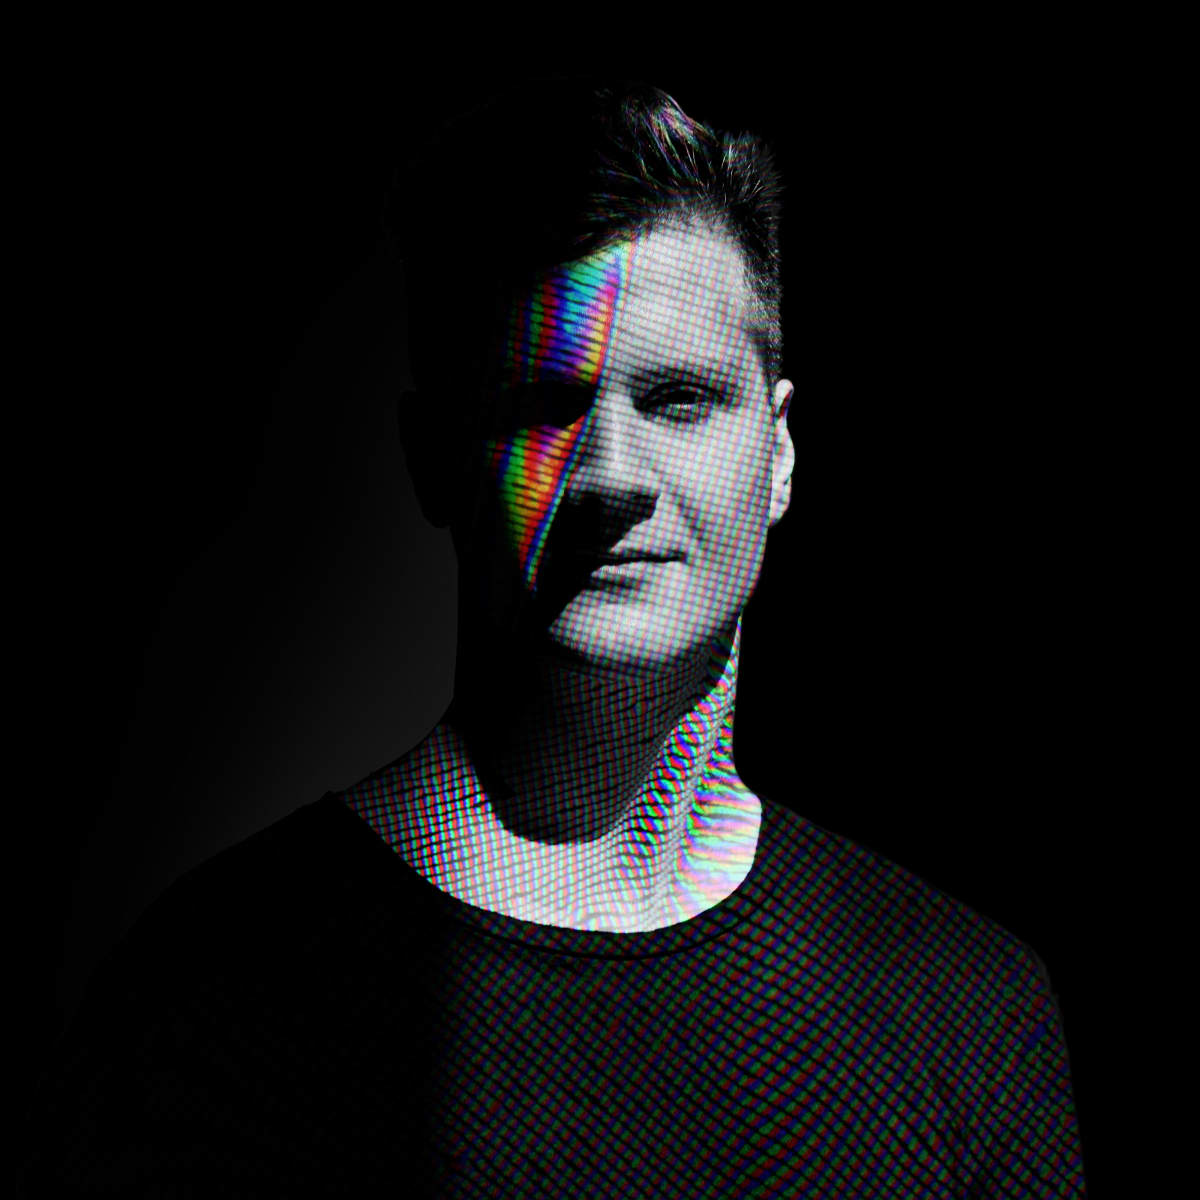 Matoma Offers Early Listen Of Unreleased Ep In New Mixtape Exclusive Edm Com The Latest Electronic Dance Music News Reviews Artists